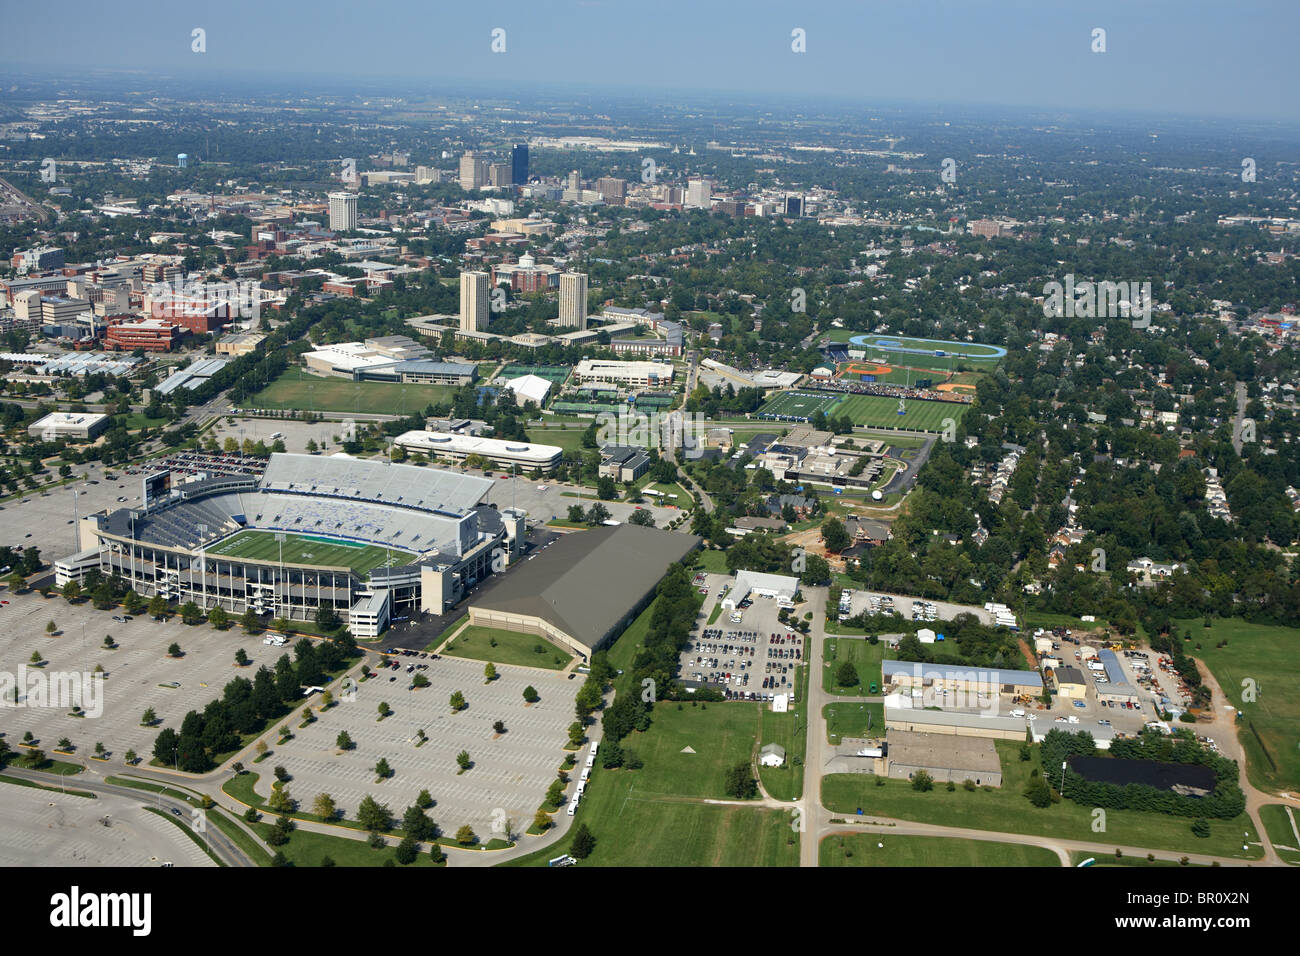 aerial view of some of the university of kentucky campus and